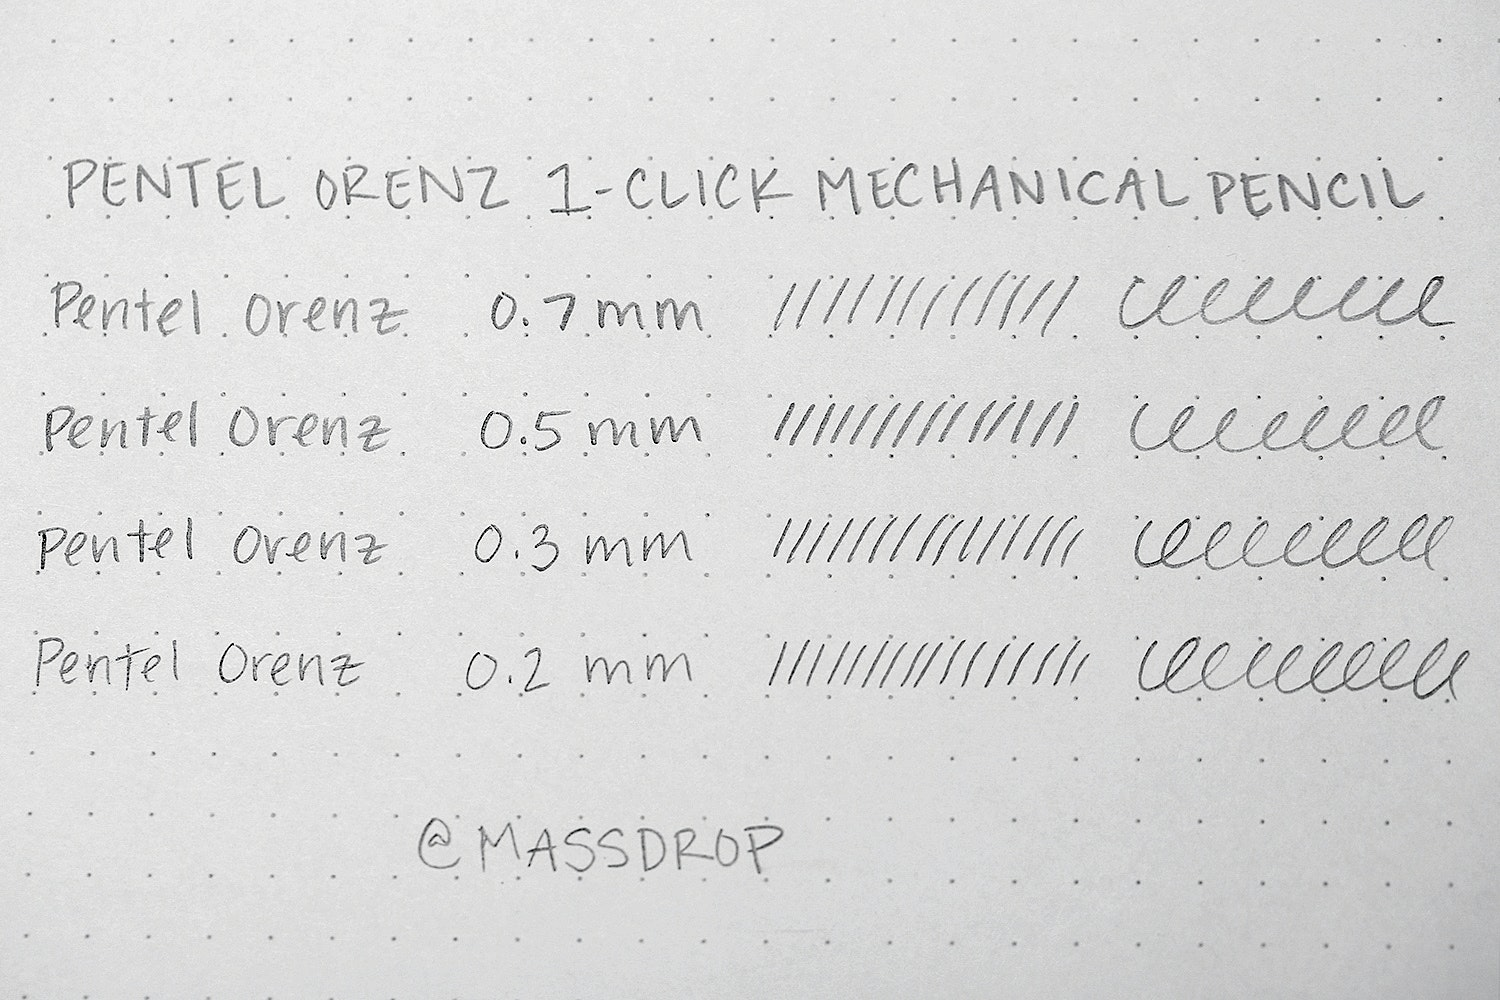 Pentel Orenz 1-Click Mechanical Pencil (4-Pack)